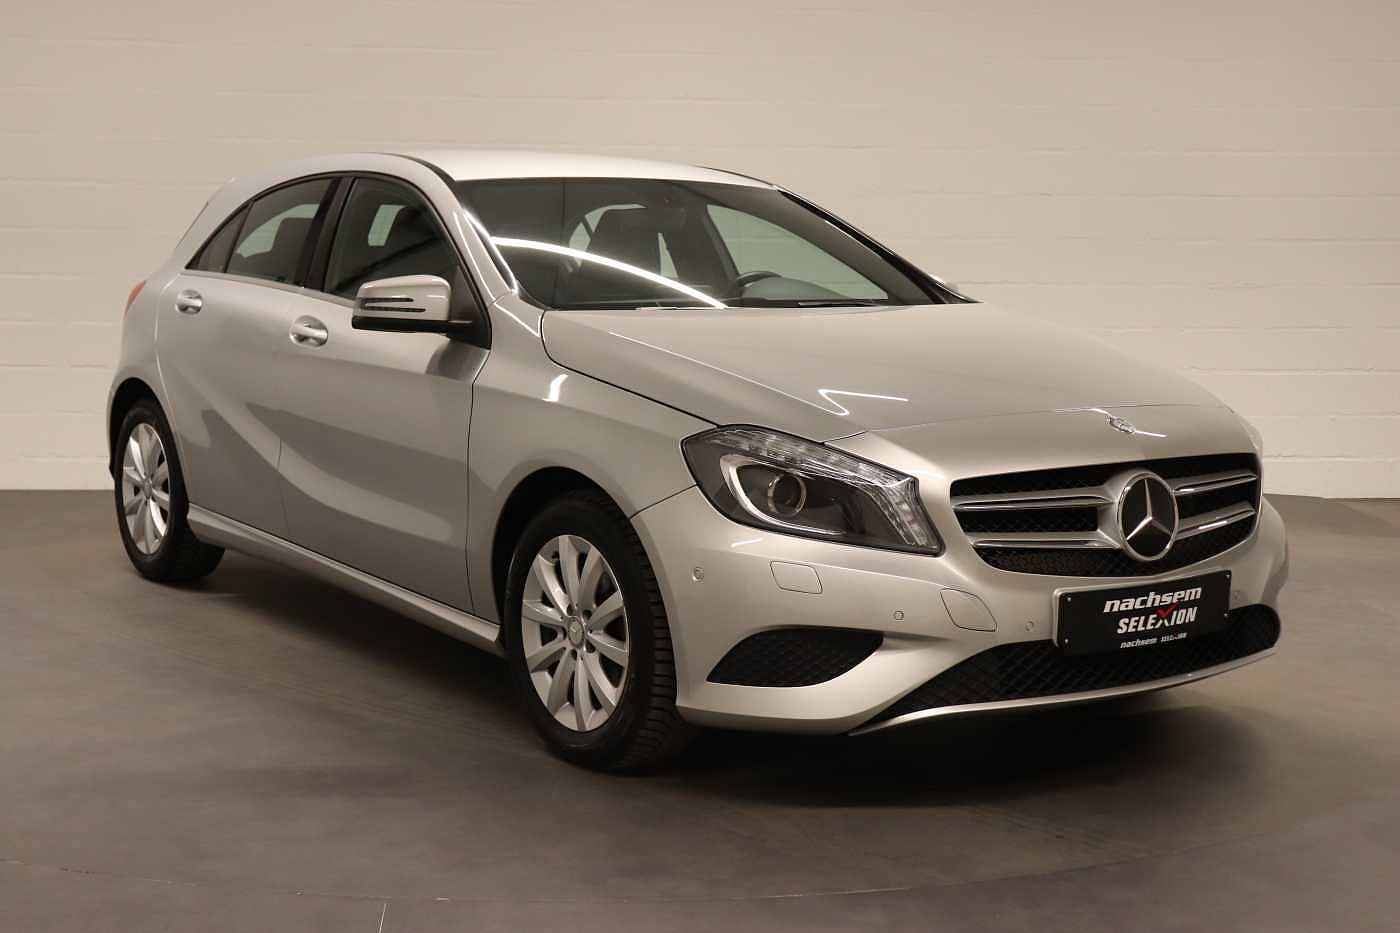 Mercedes-Benz A 180 1.5D - photo 6